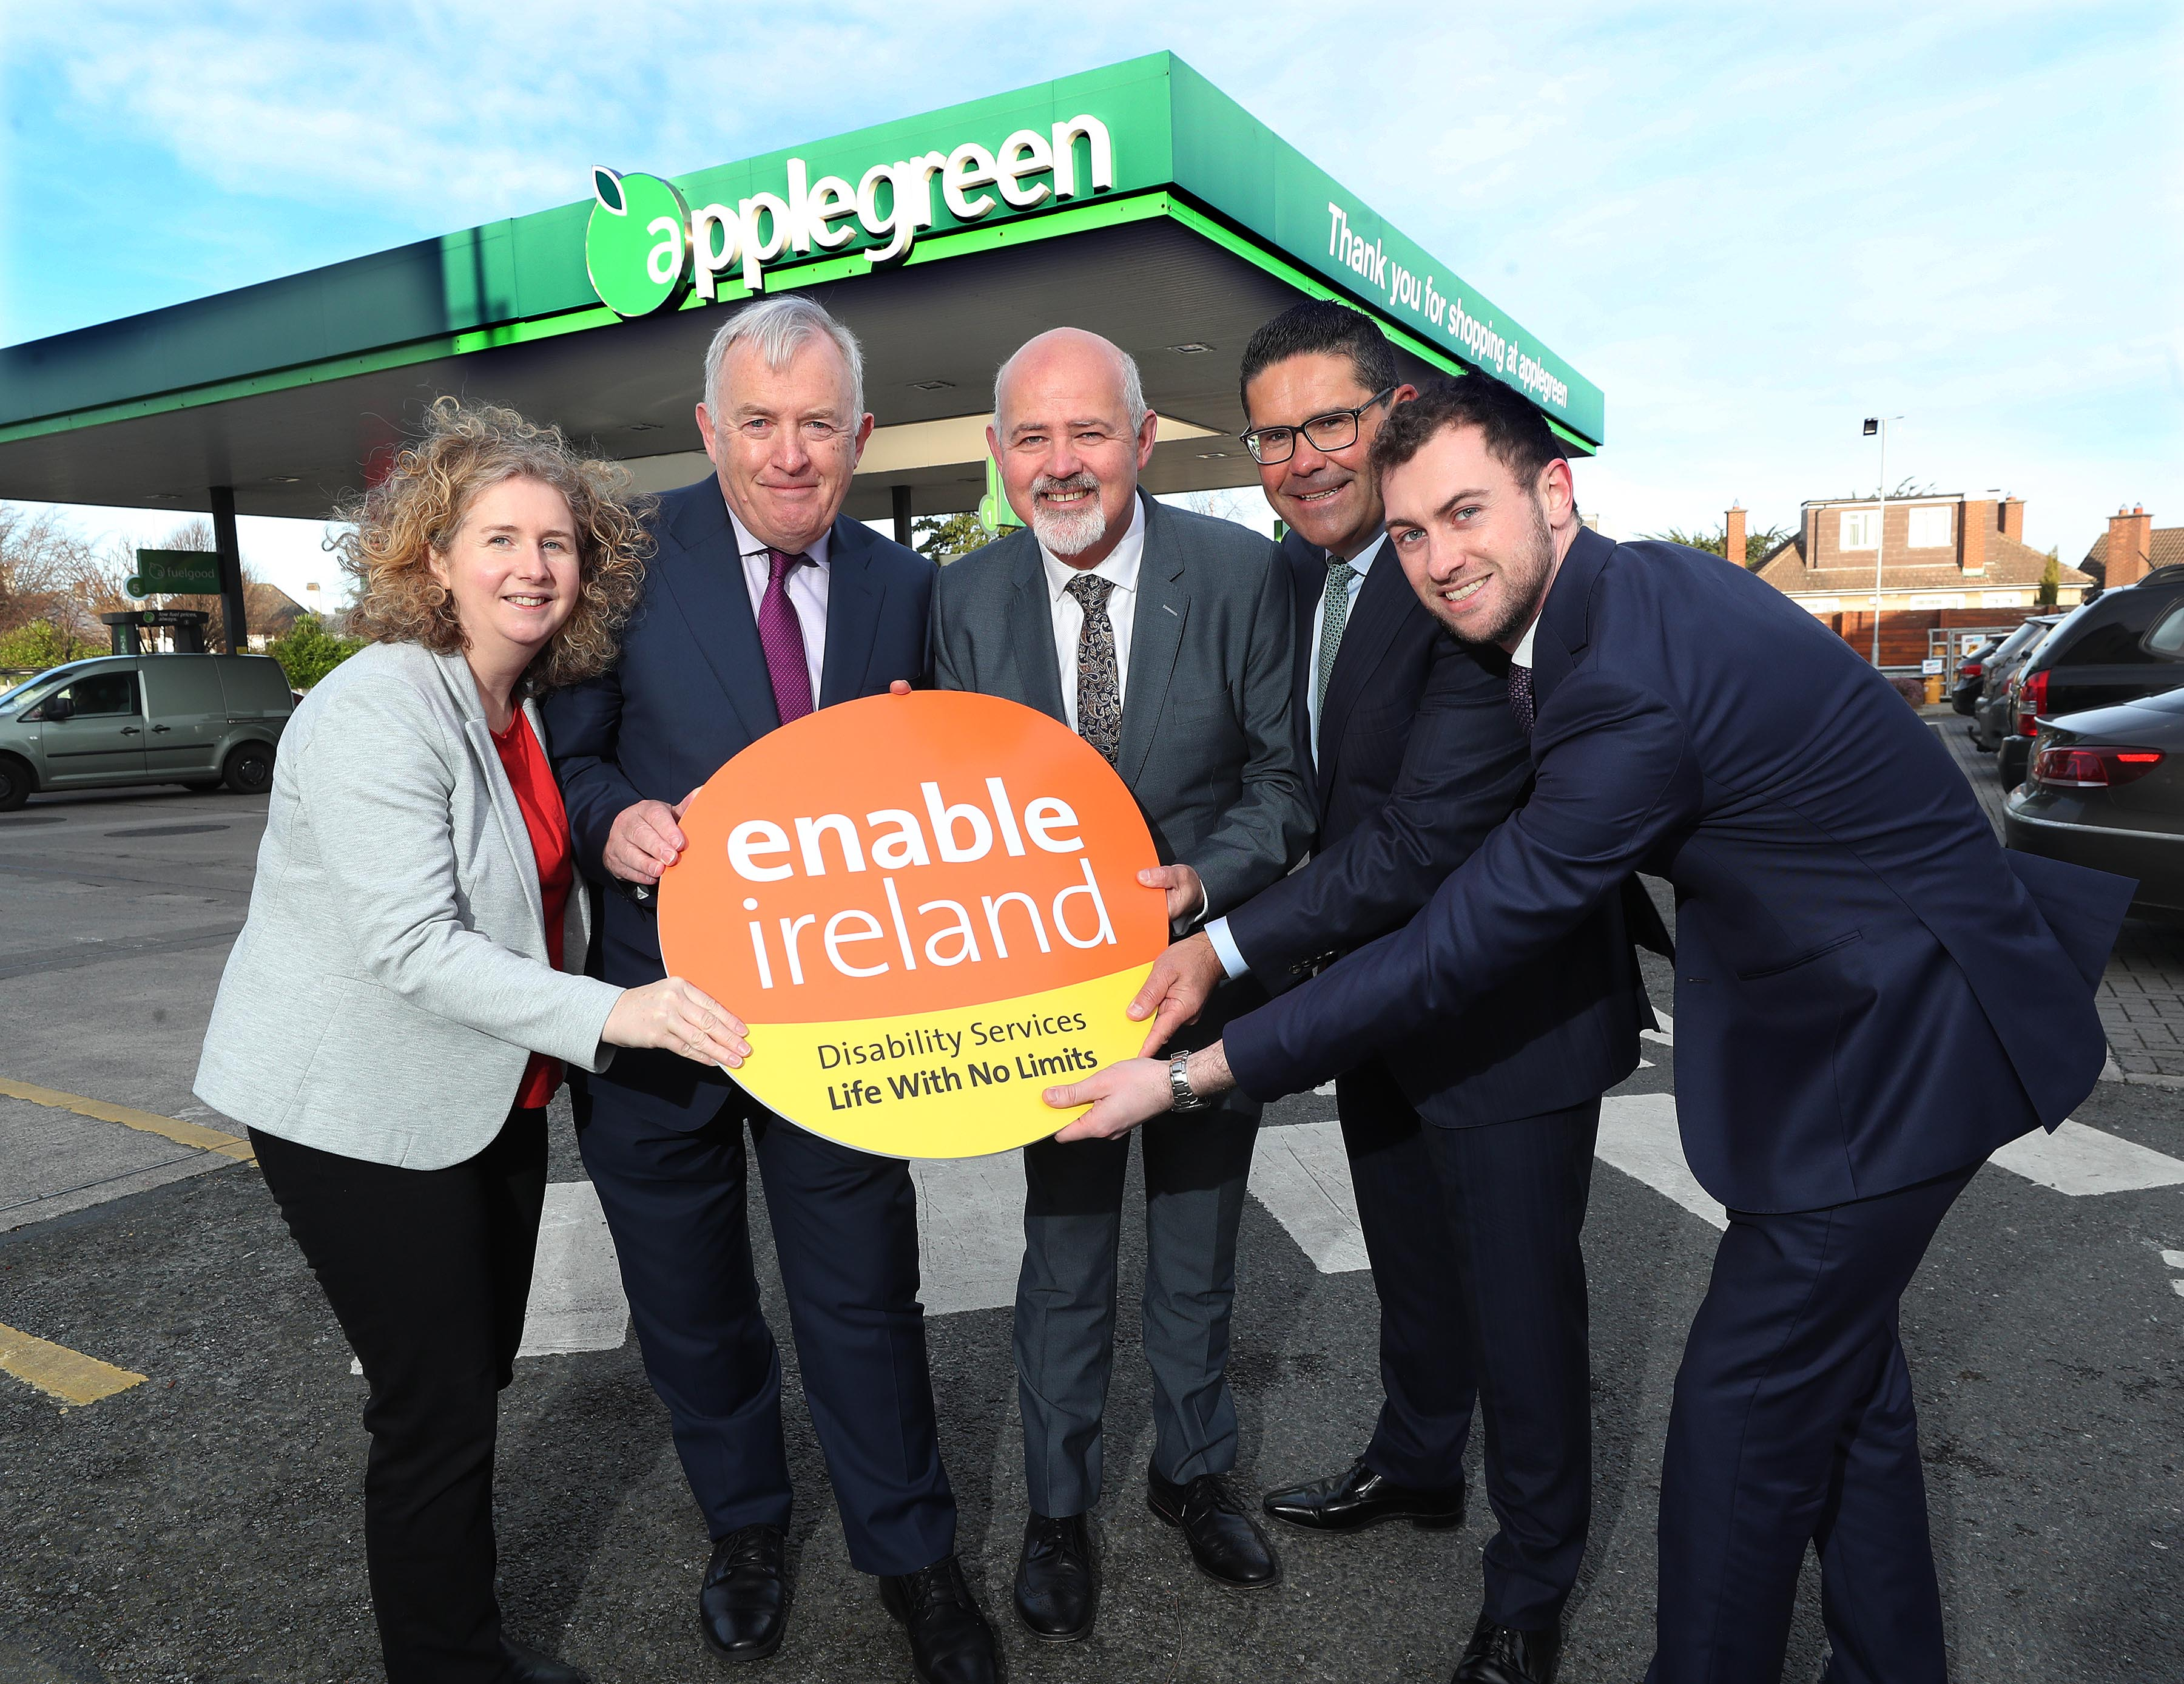 Image shows people from Enable Ireland and Applegreen at the launch of the partnership